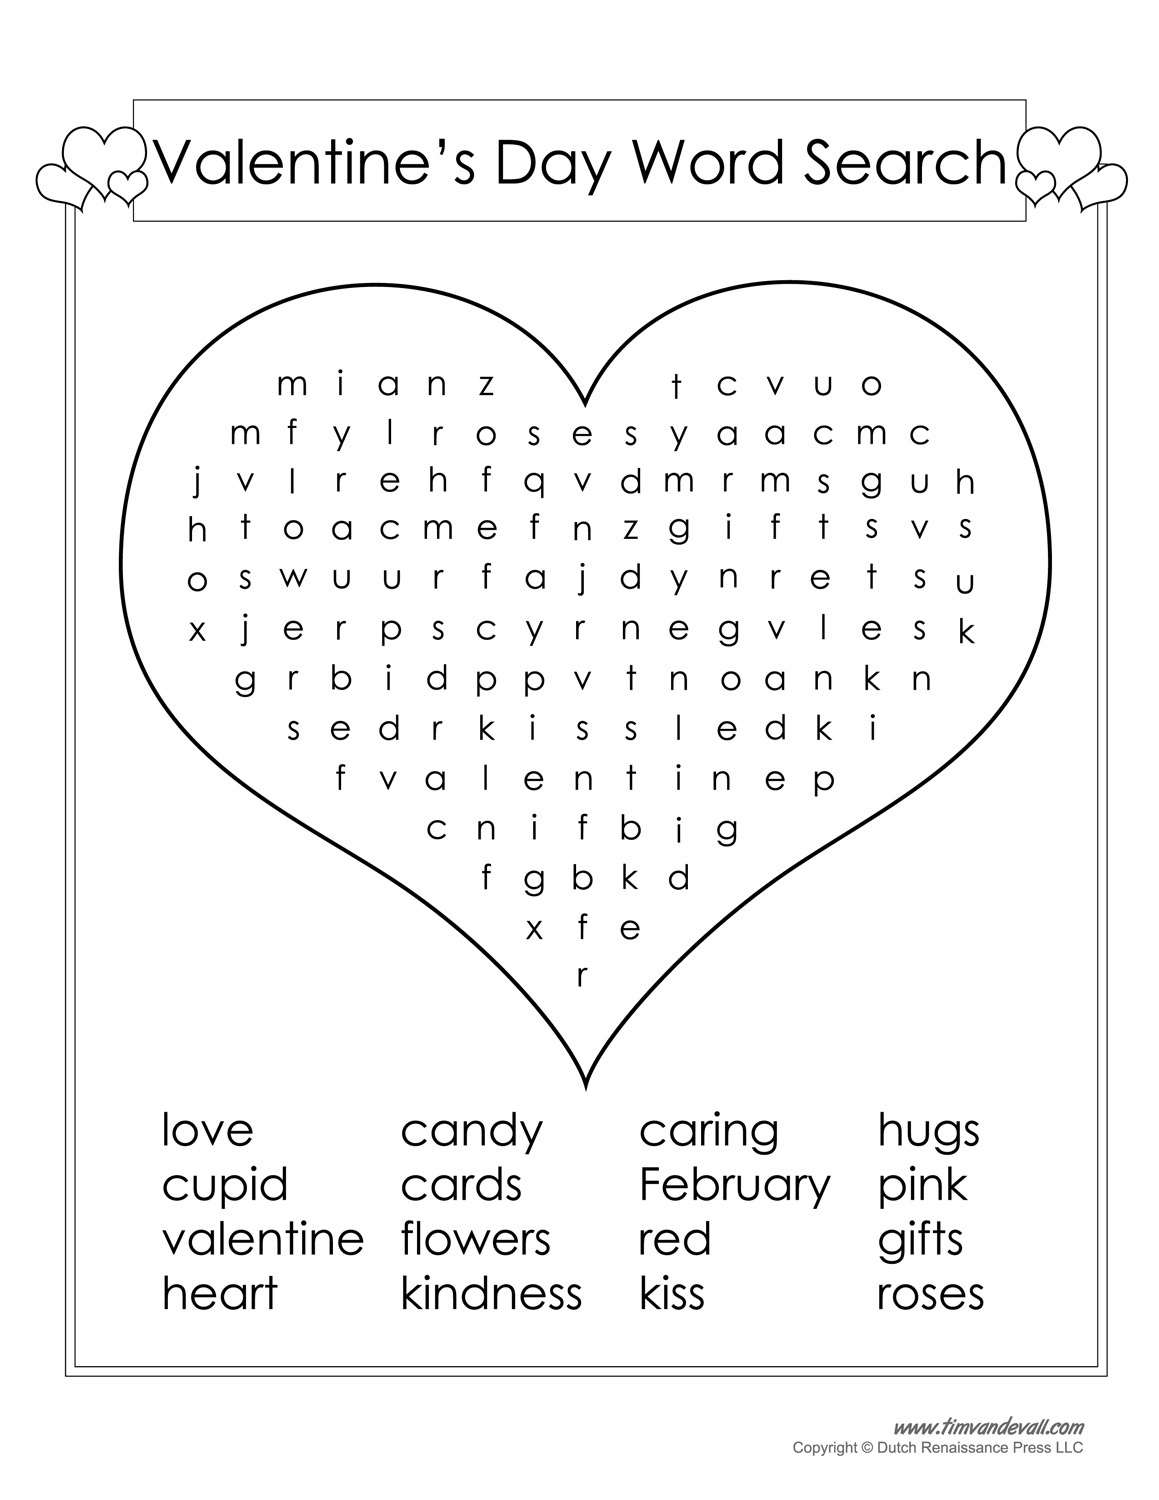 12 Valentine's Day Word Search | Kittybabylove - Valentine's Day Printable Puzzle